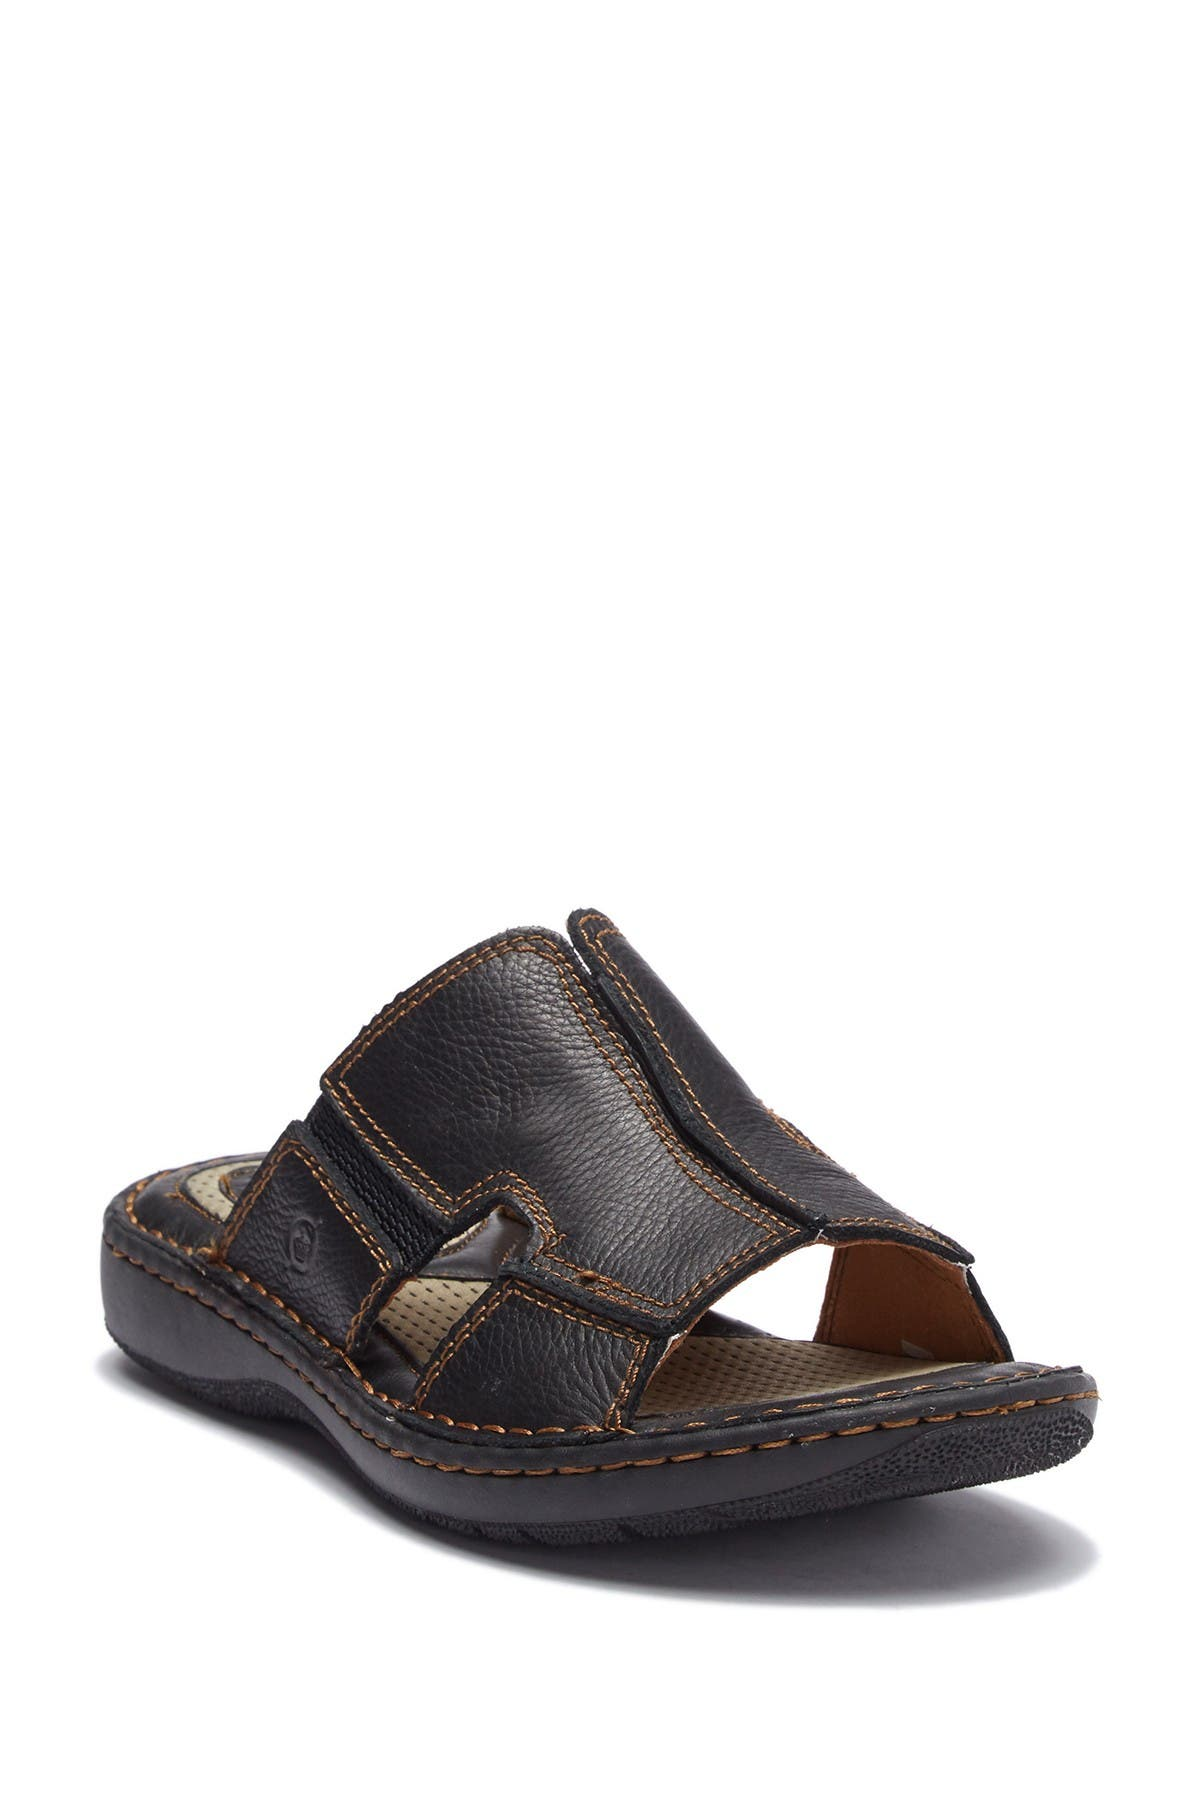 Image of Born Robert Leather Slide Sandal